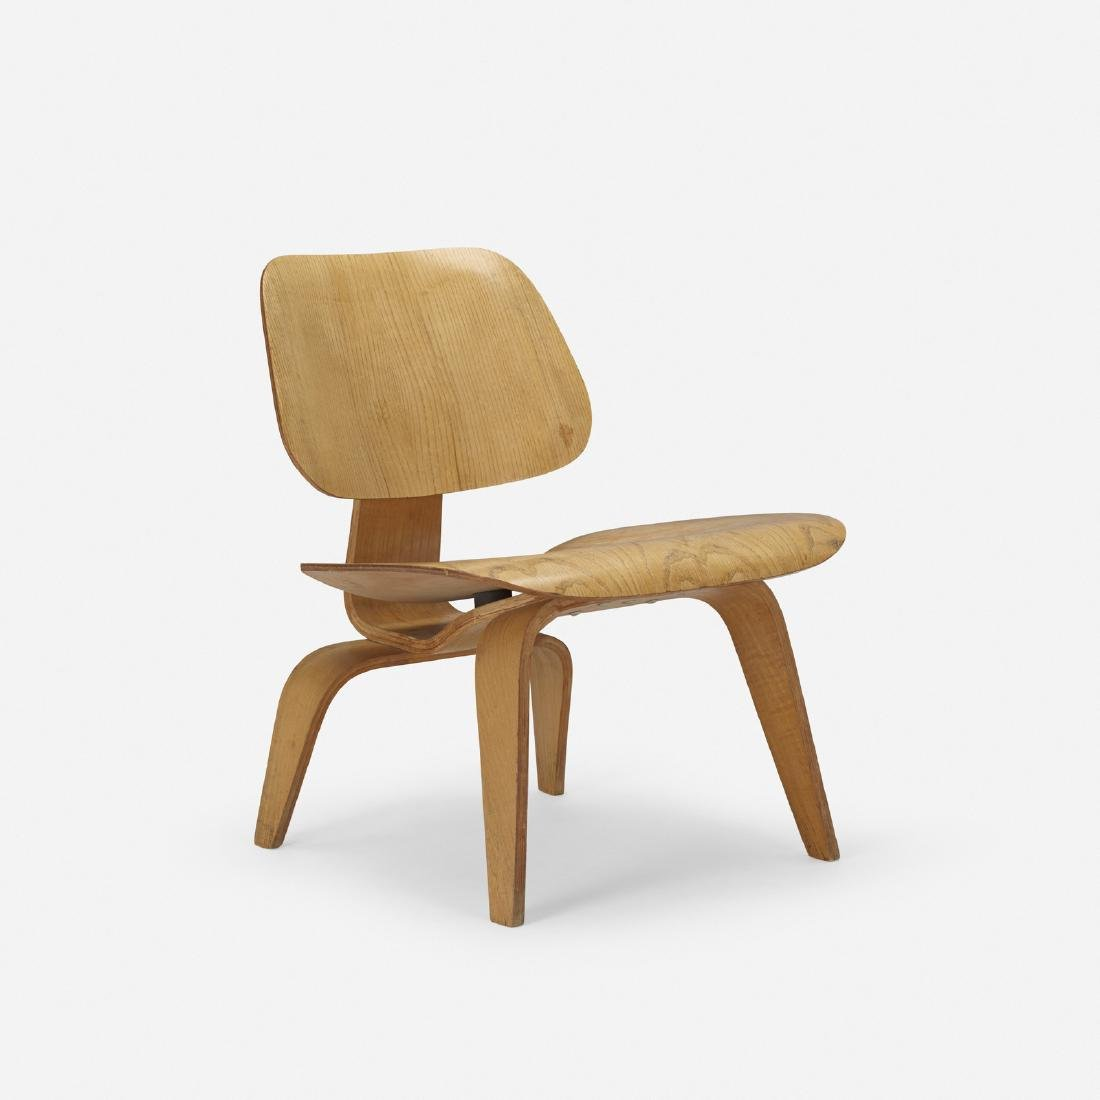 Charles and Ray Eames, early LCW - 2